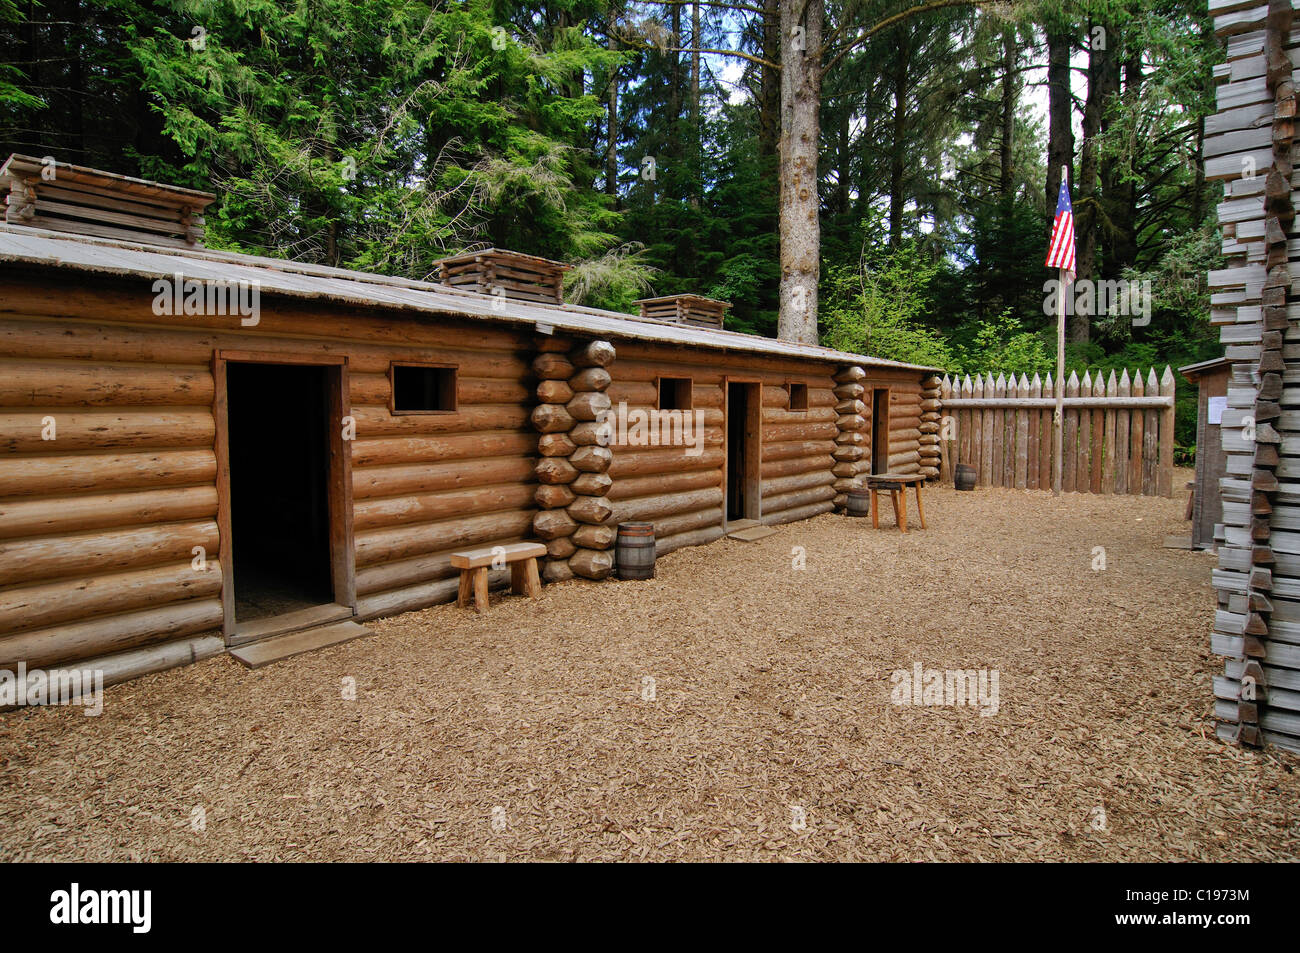 Fort Clatsop By Lewis And Clark Interpretive Canter, Cape Disappointment,  Lewis And Clark National